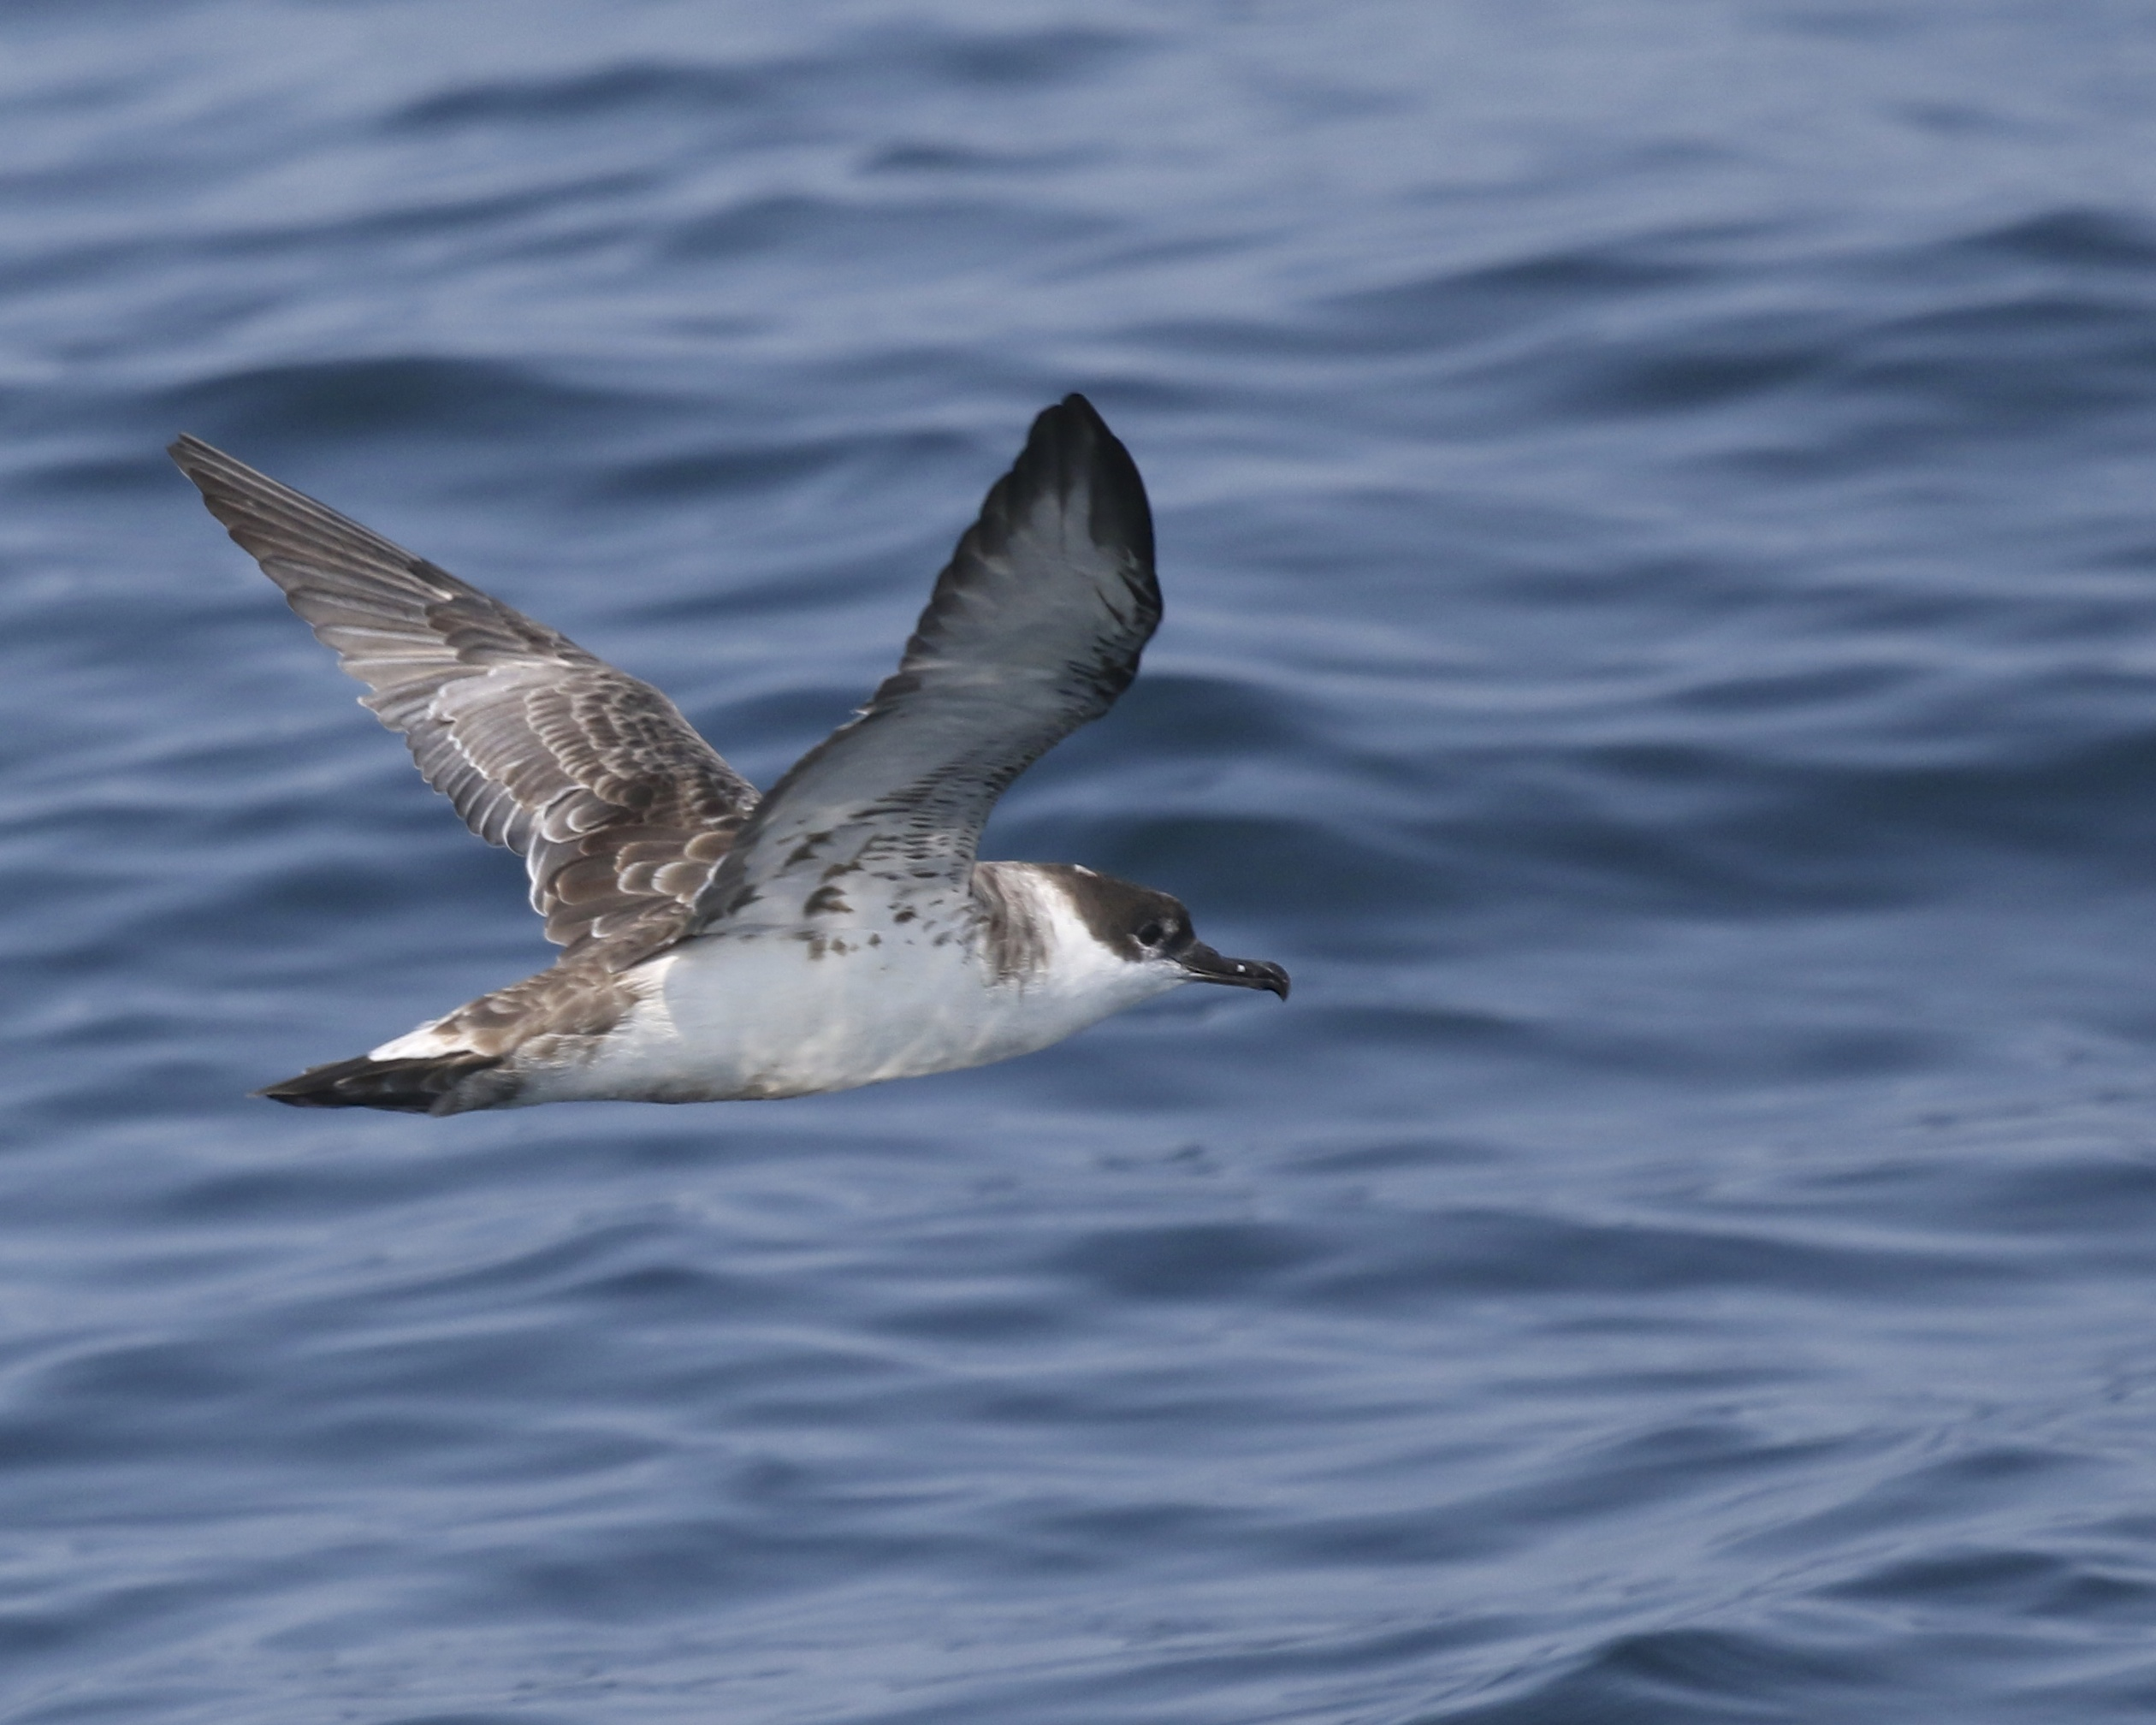 We also had many Great Shearwaters. Whale Watching Tour off of Bar Harbor ME, 8/1/14.